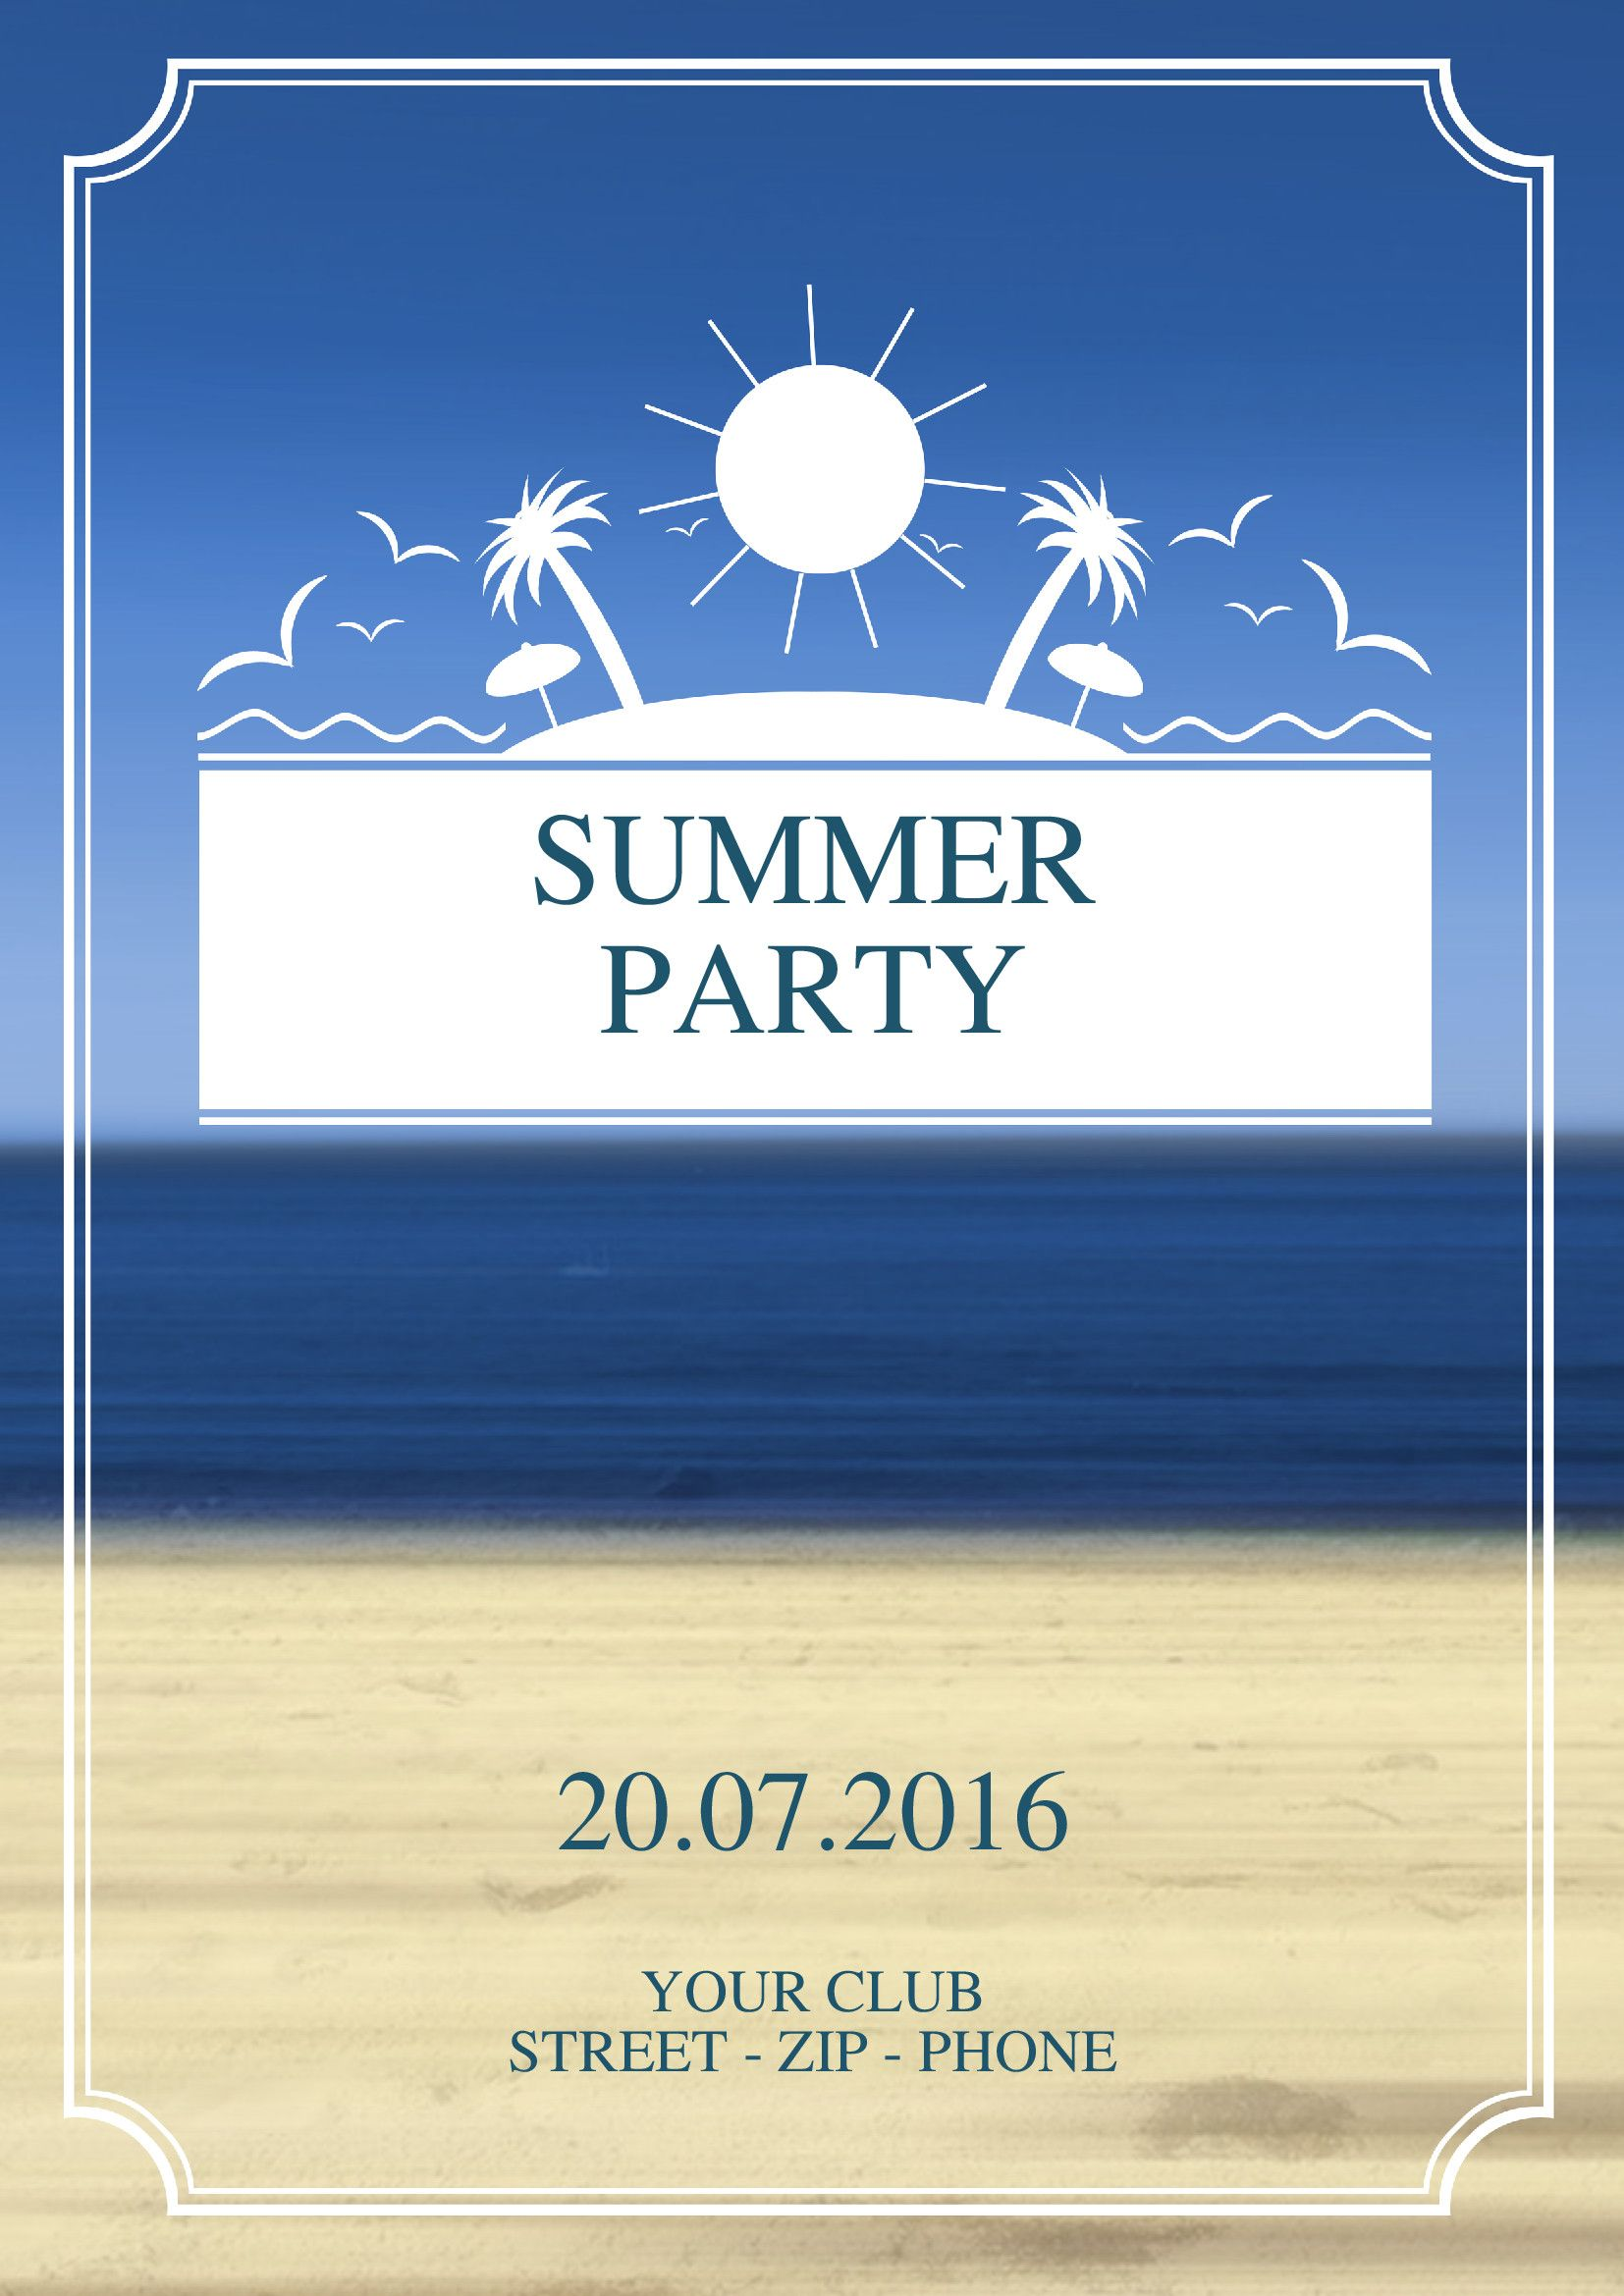 Use this fun, colorful invitation / flyer design for any Summer ...